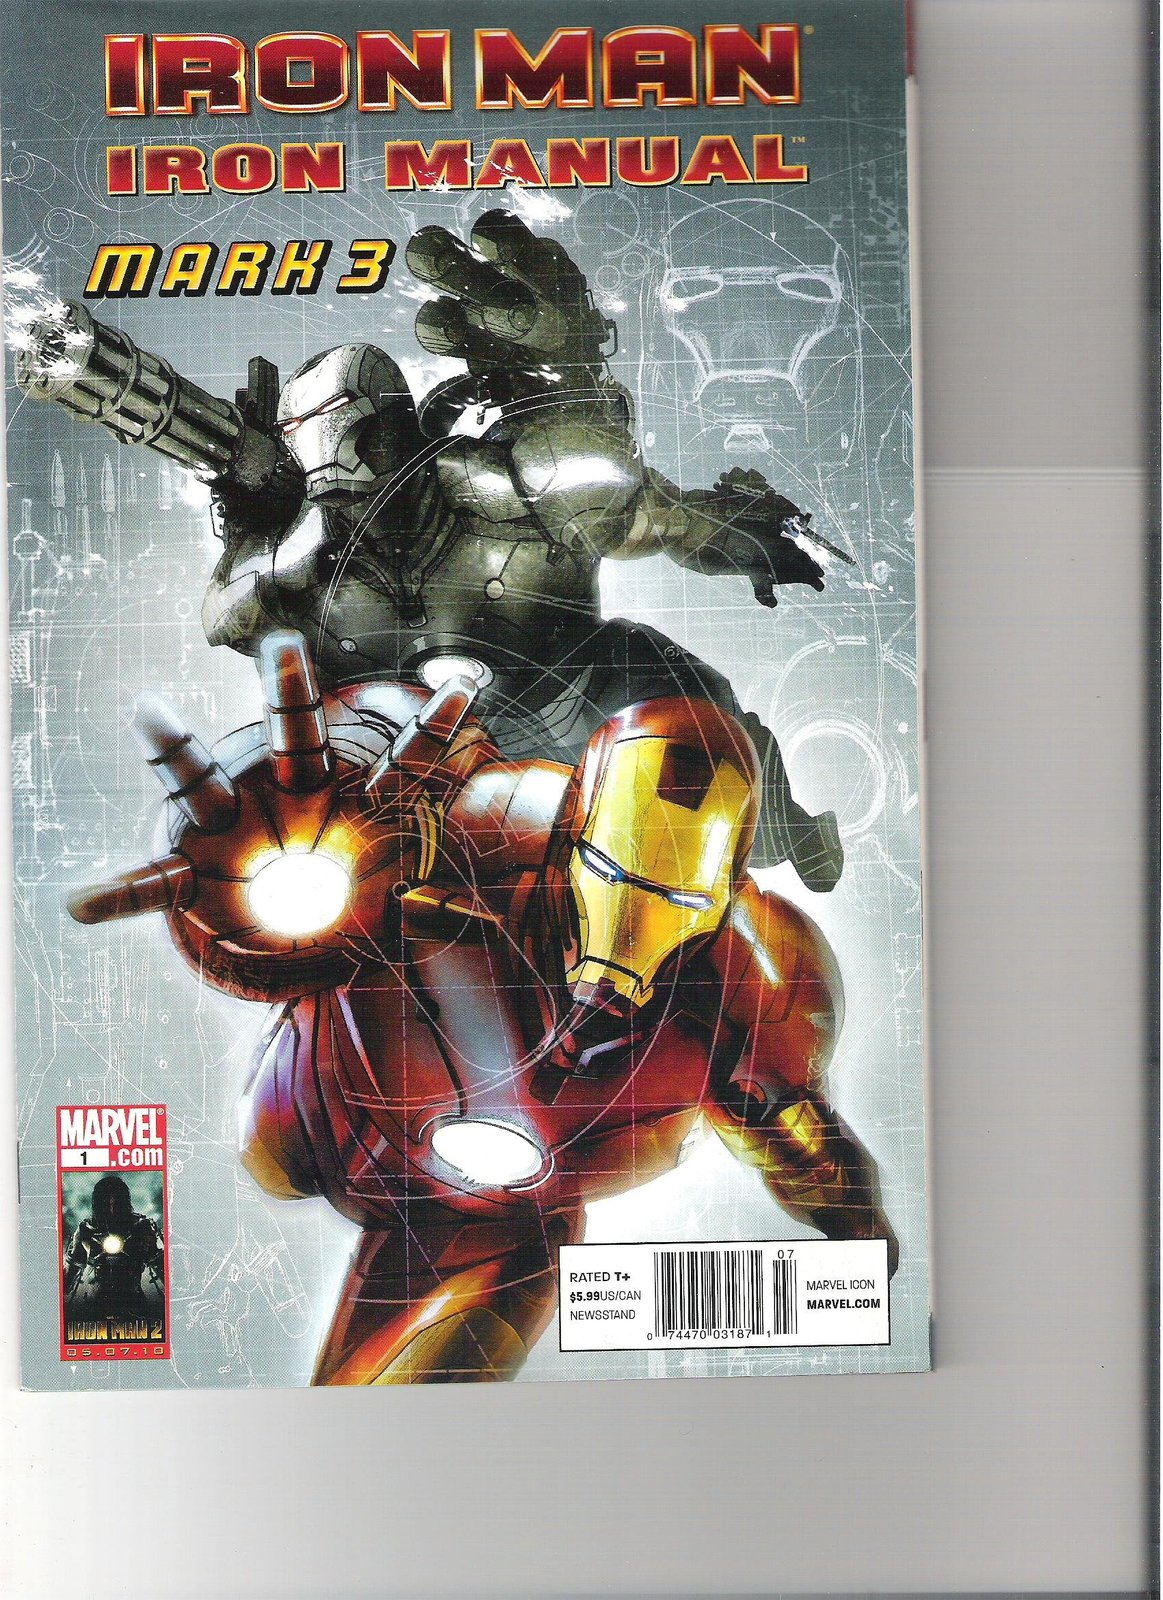 Marvel Iron Man Iron Manual Comic (Mark 3, Number 1 2010) [Single Issue Magaz...